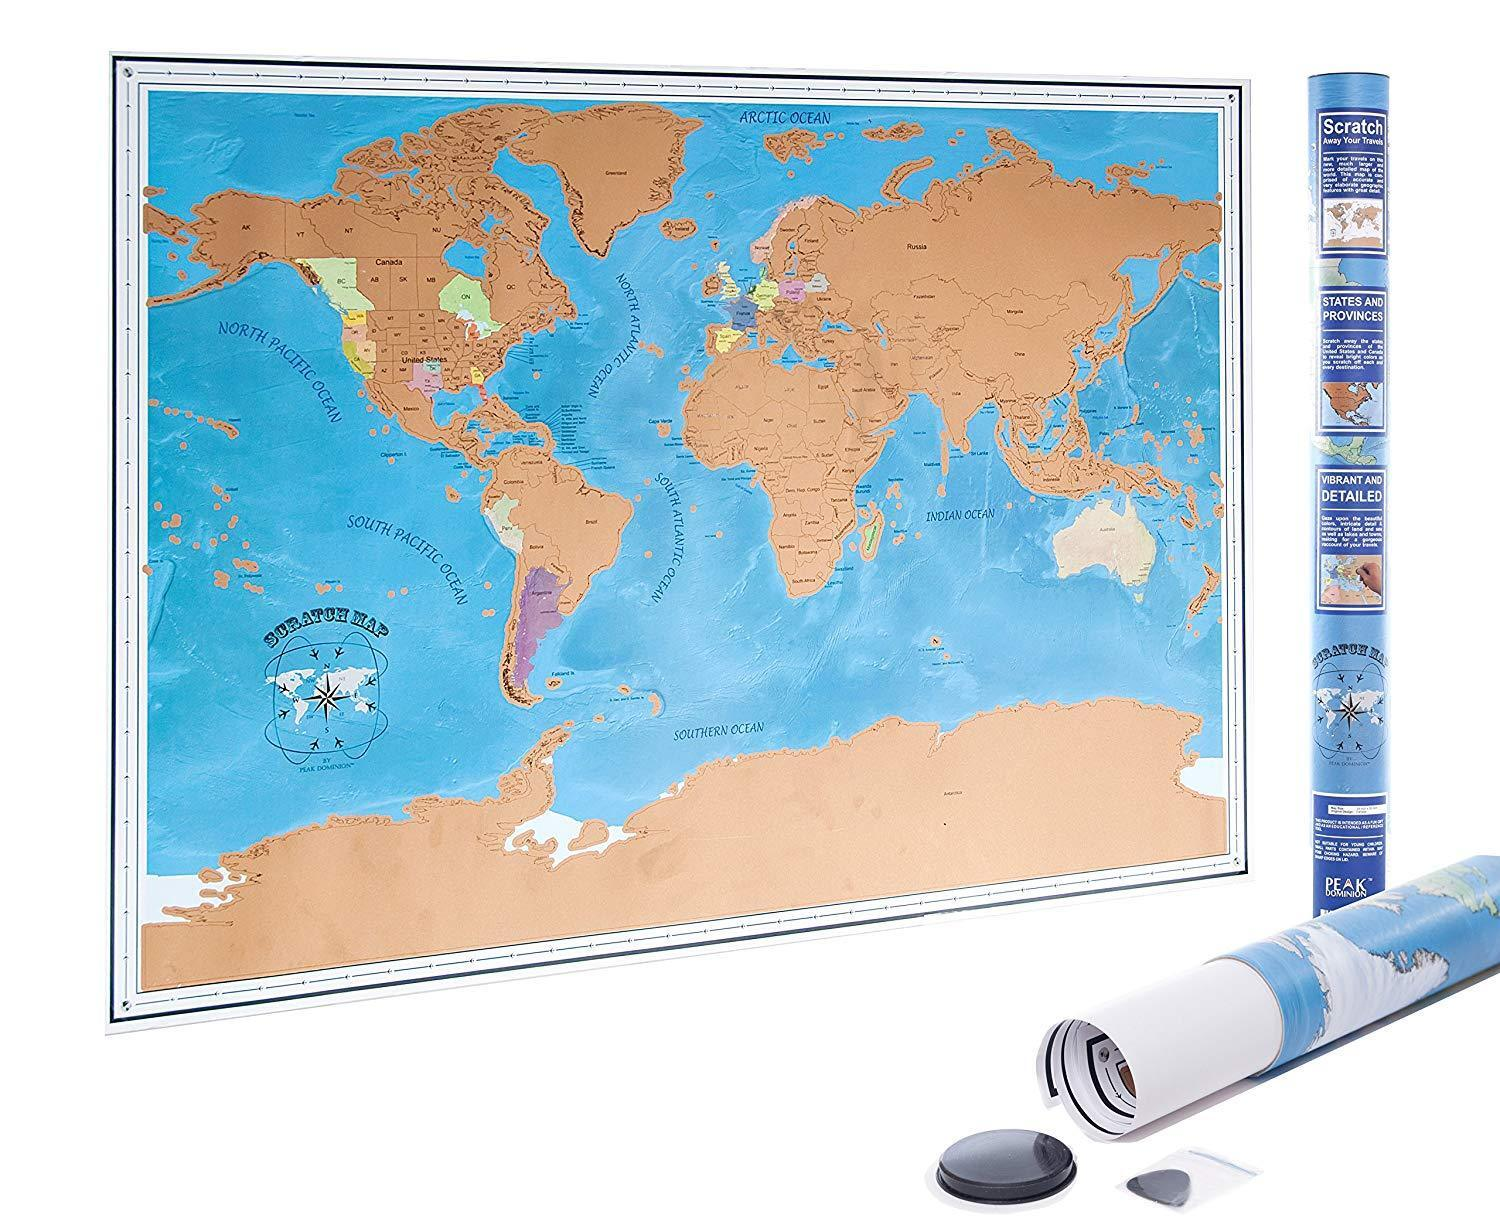 Scratch Off World Map Poster With Us States And Country Flags Fast - Us-map-poster